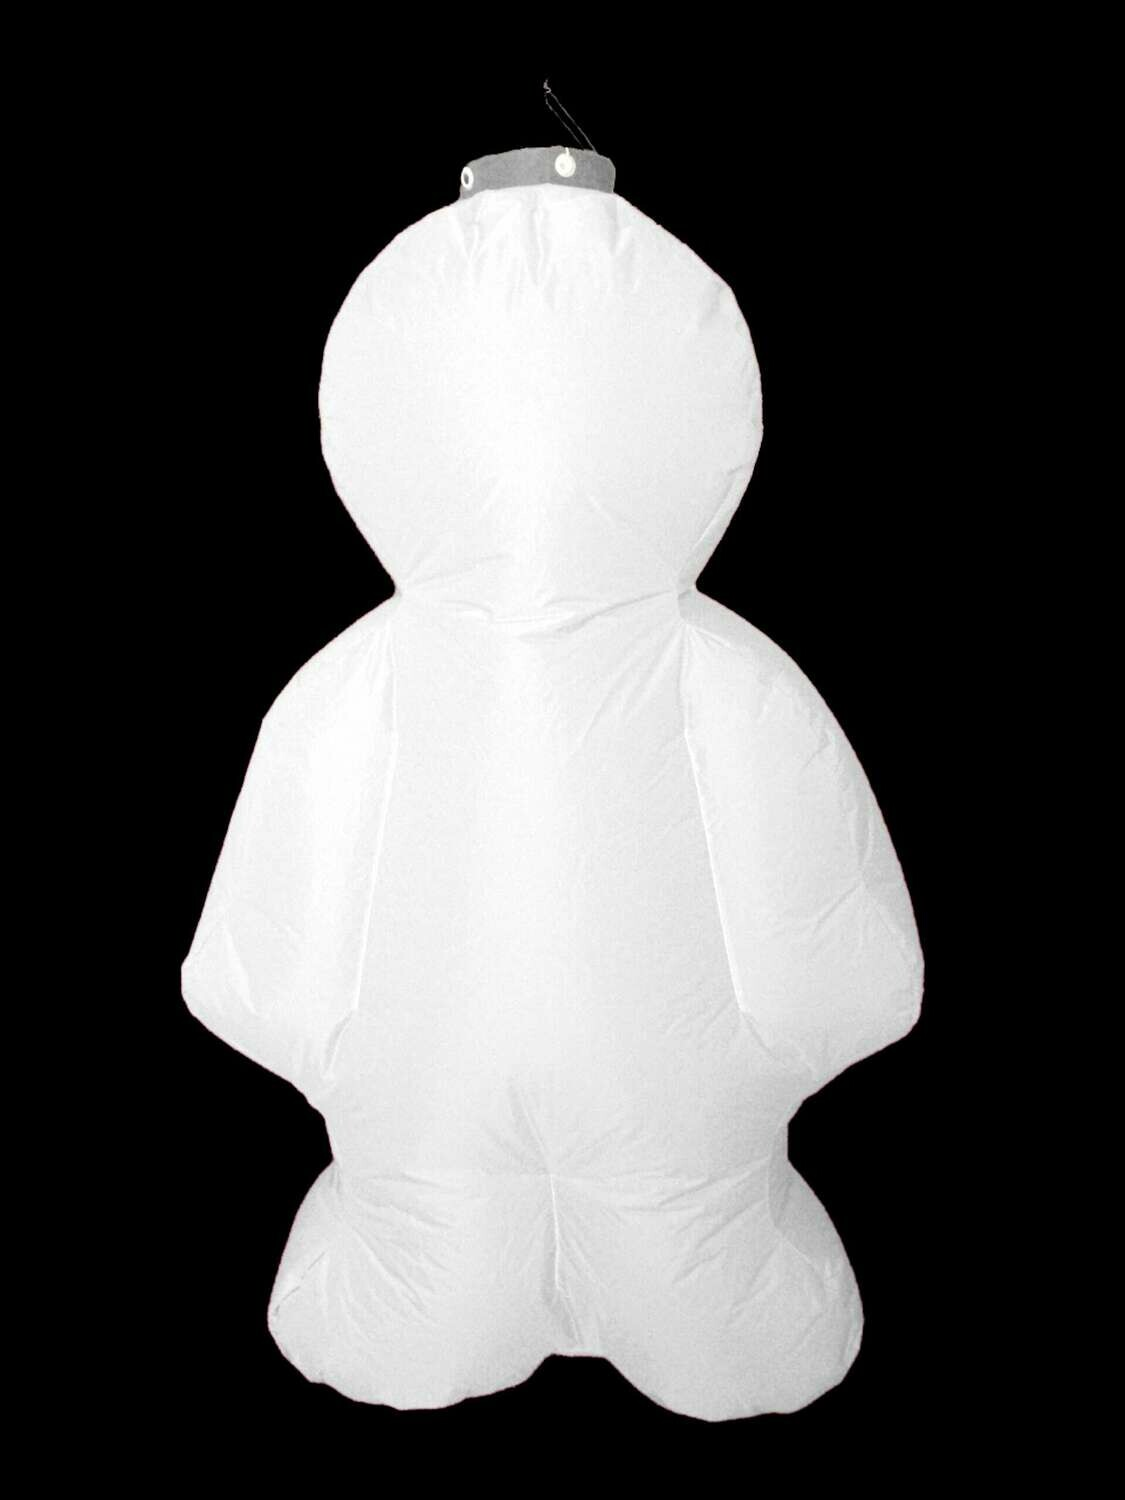 Hanging Inflatable Jelly Baby 1.8ft/55cm x 3ft/91cm